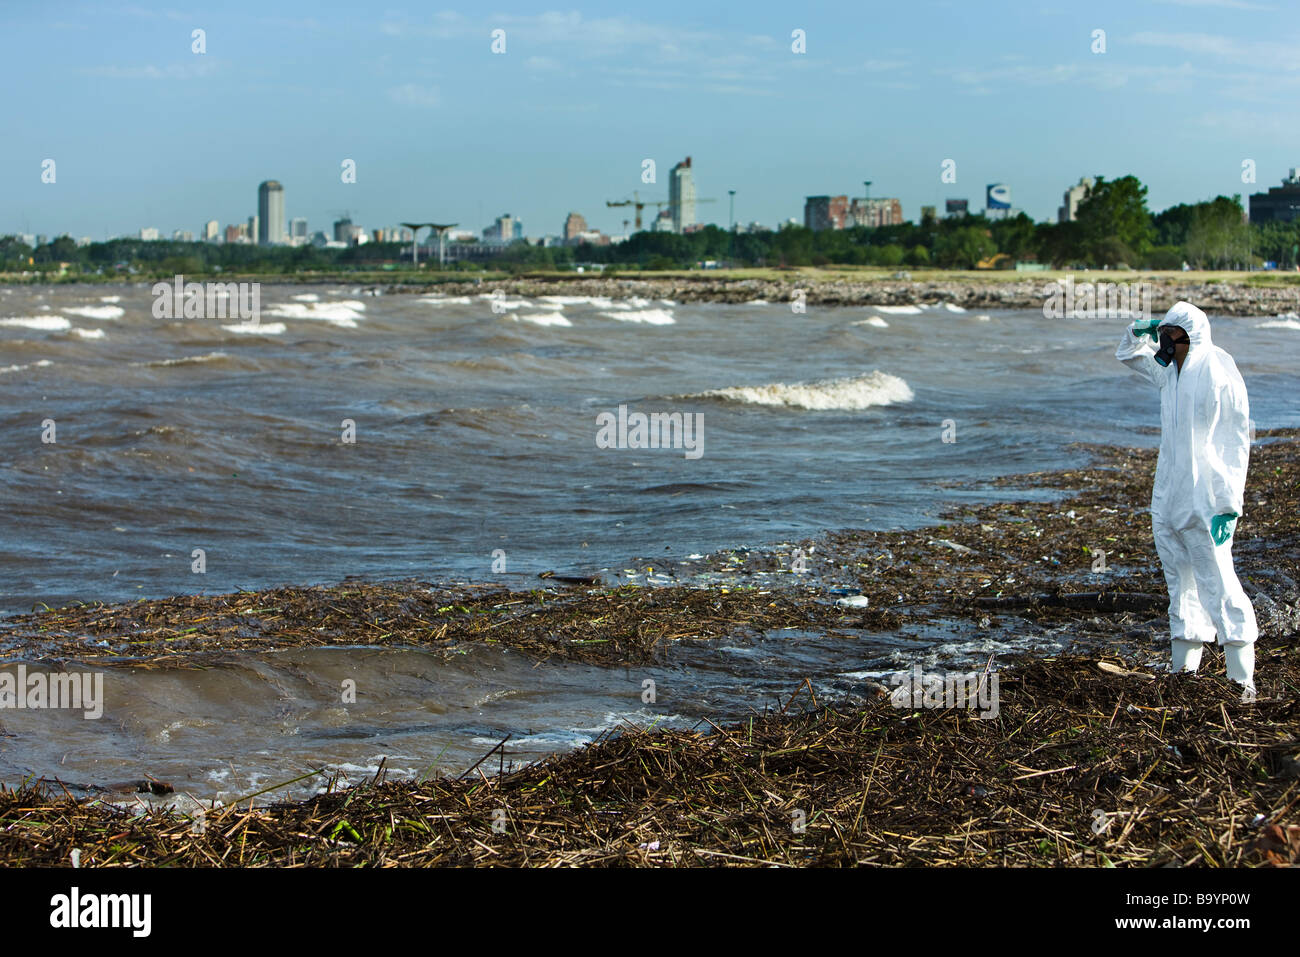 Person in protective suit standing on polluted shore, city in background - Stock Image